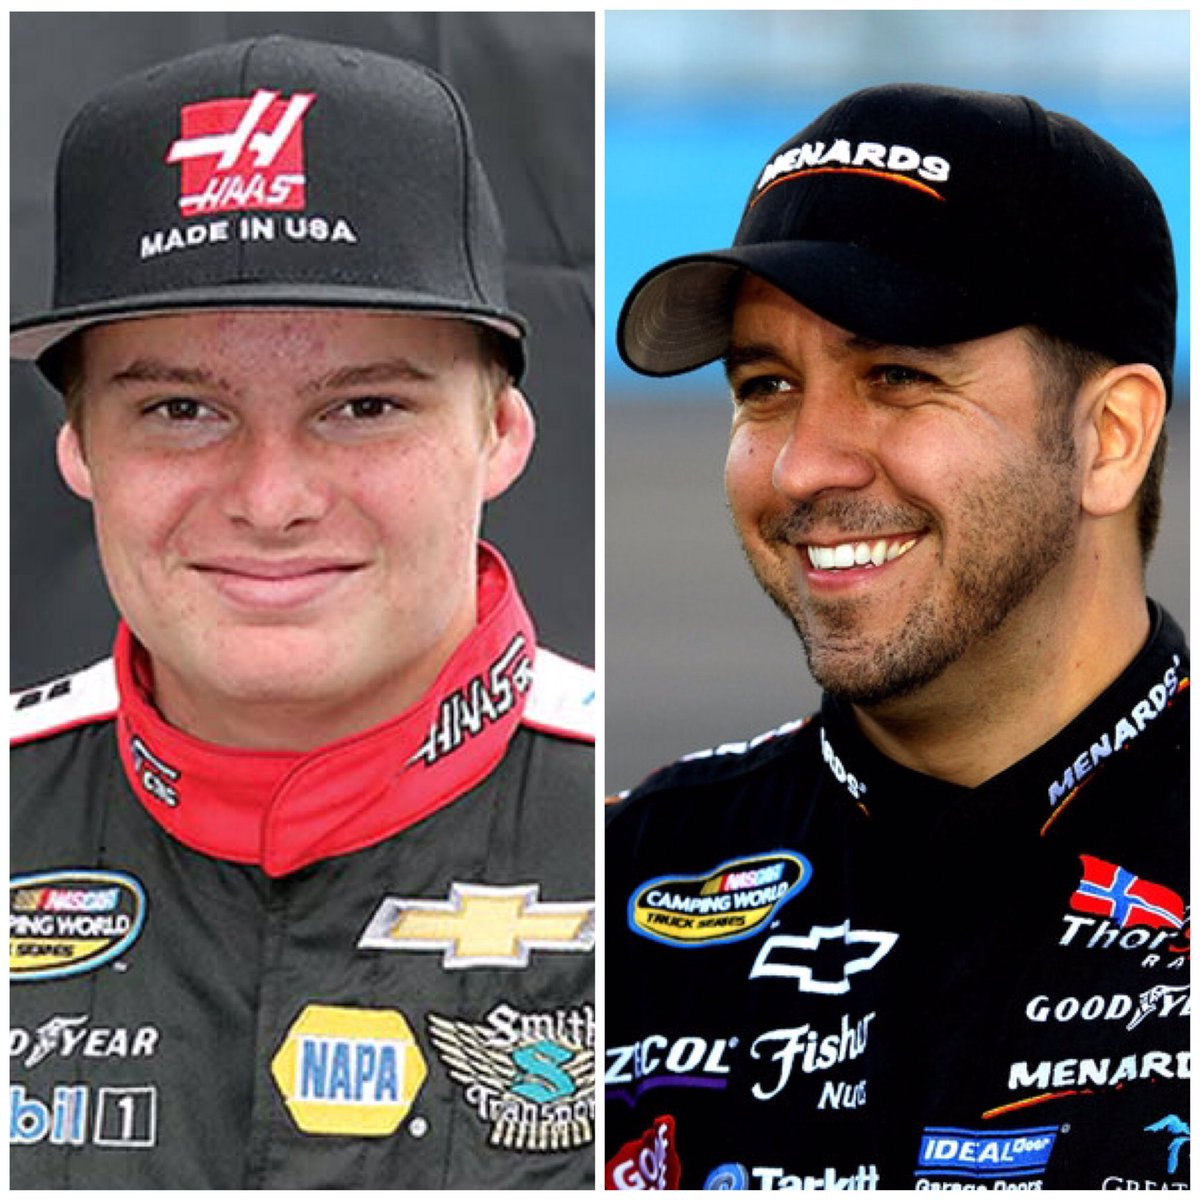 @lappedtrafficpc #NASCAR podcast has a doubleheader lined up for our 30th episode! @Matt_Crafton and @colecuster00 will be joining us!<br>http://pic.twitter.com/h8Q3T5EfEK